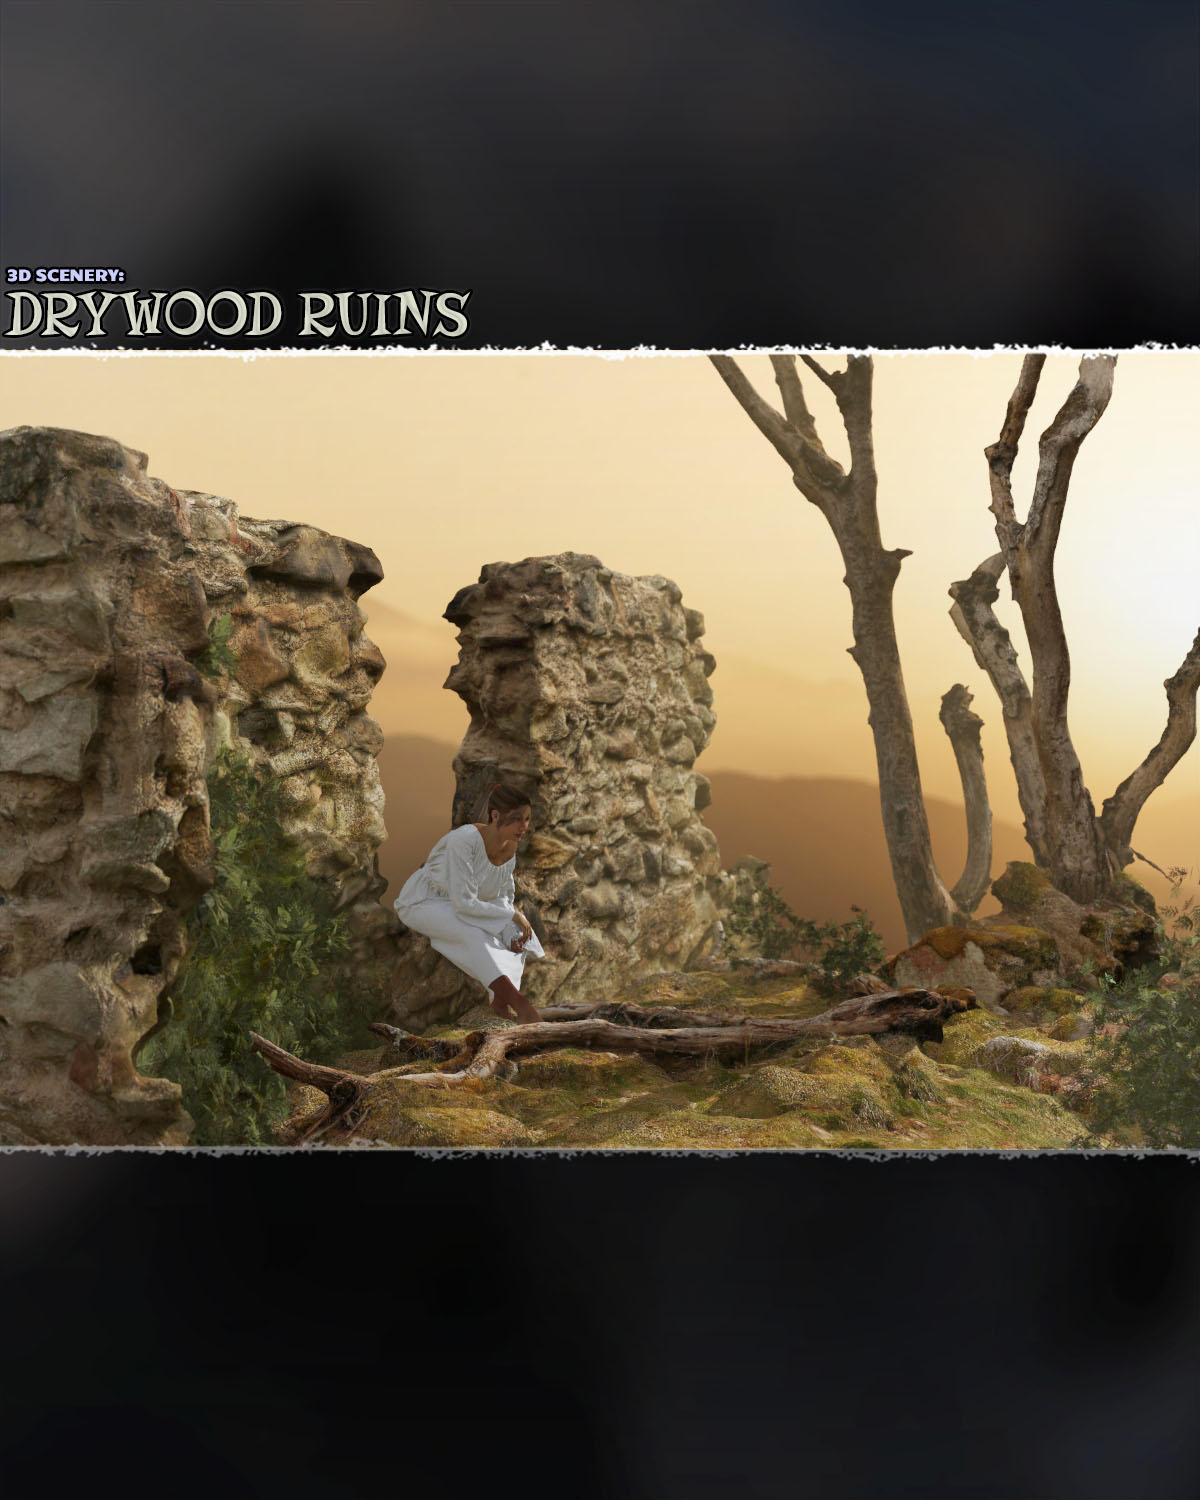 3D Scenery: Drywood Ruins by ShaaraMuse3D